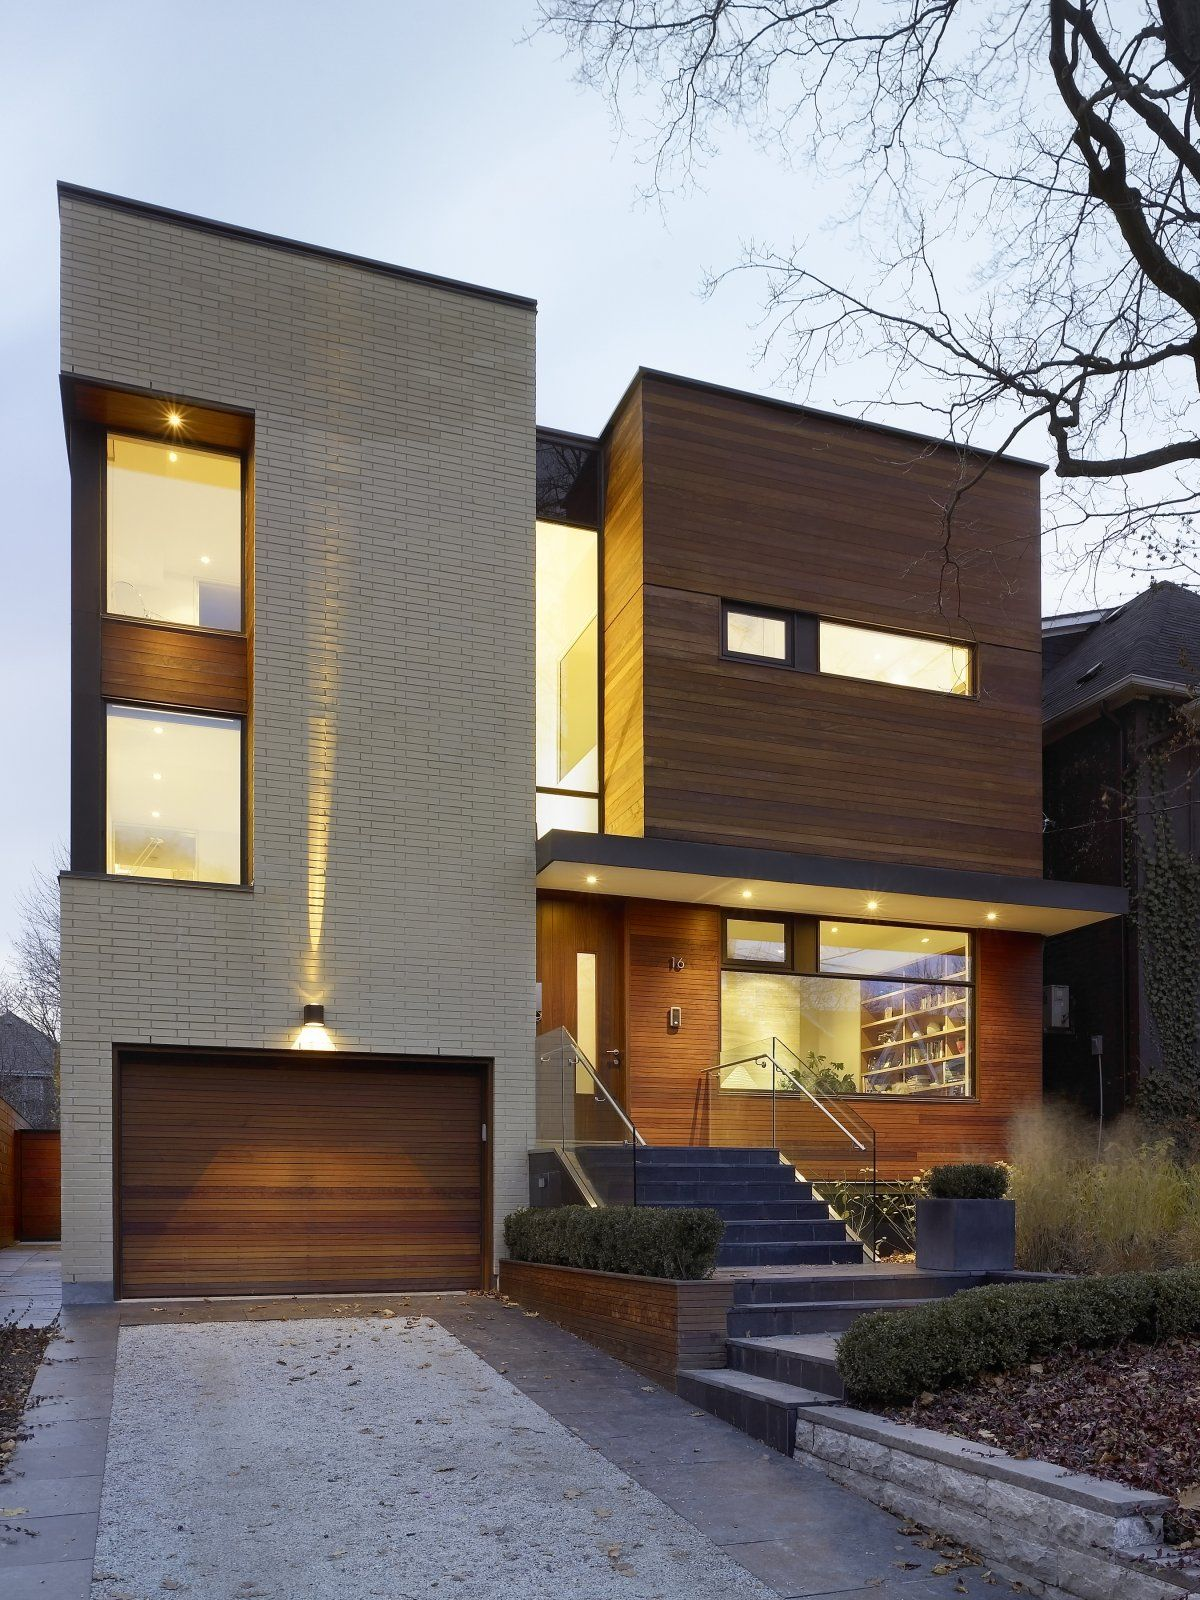 1000+ images about Modern rchitecture - xterior on Pinterest ... - ^